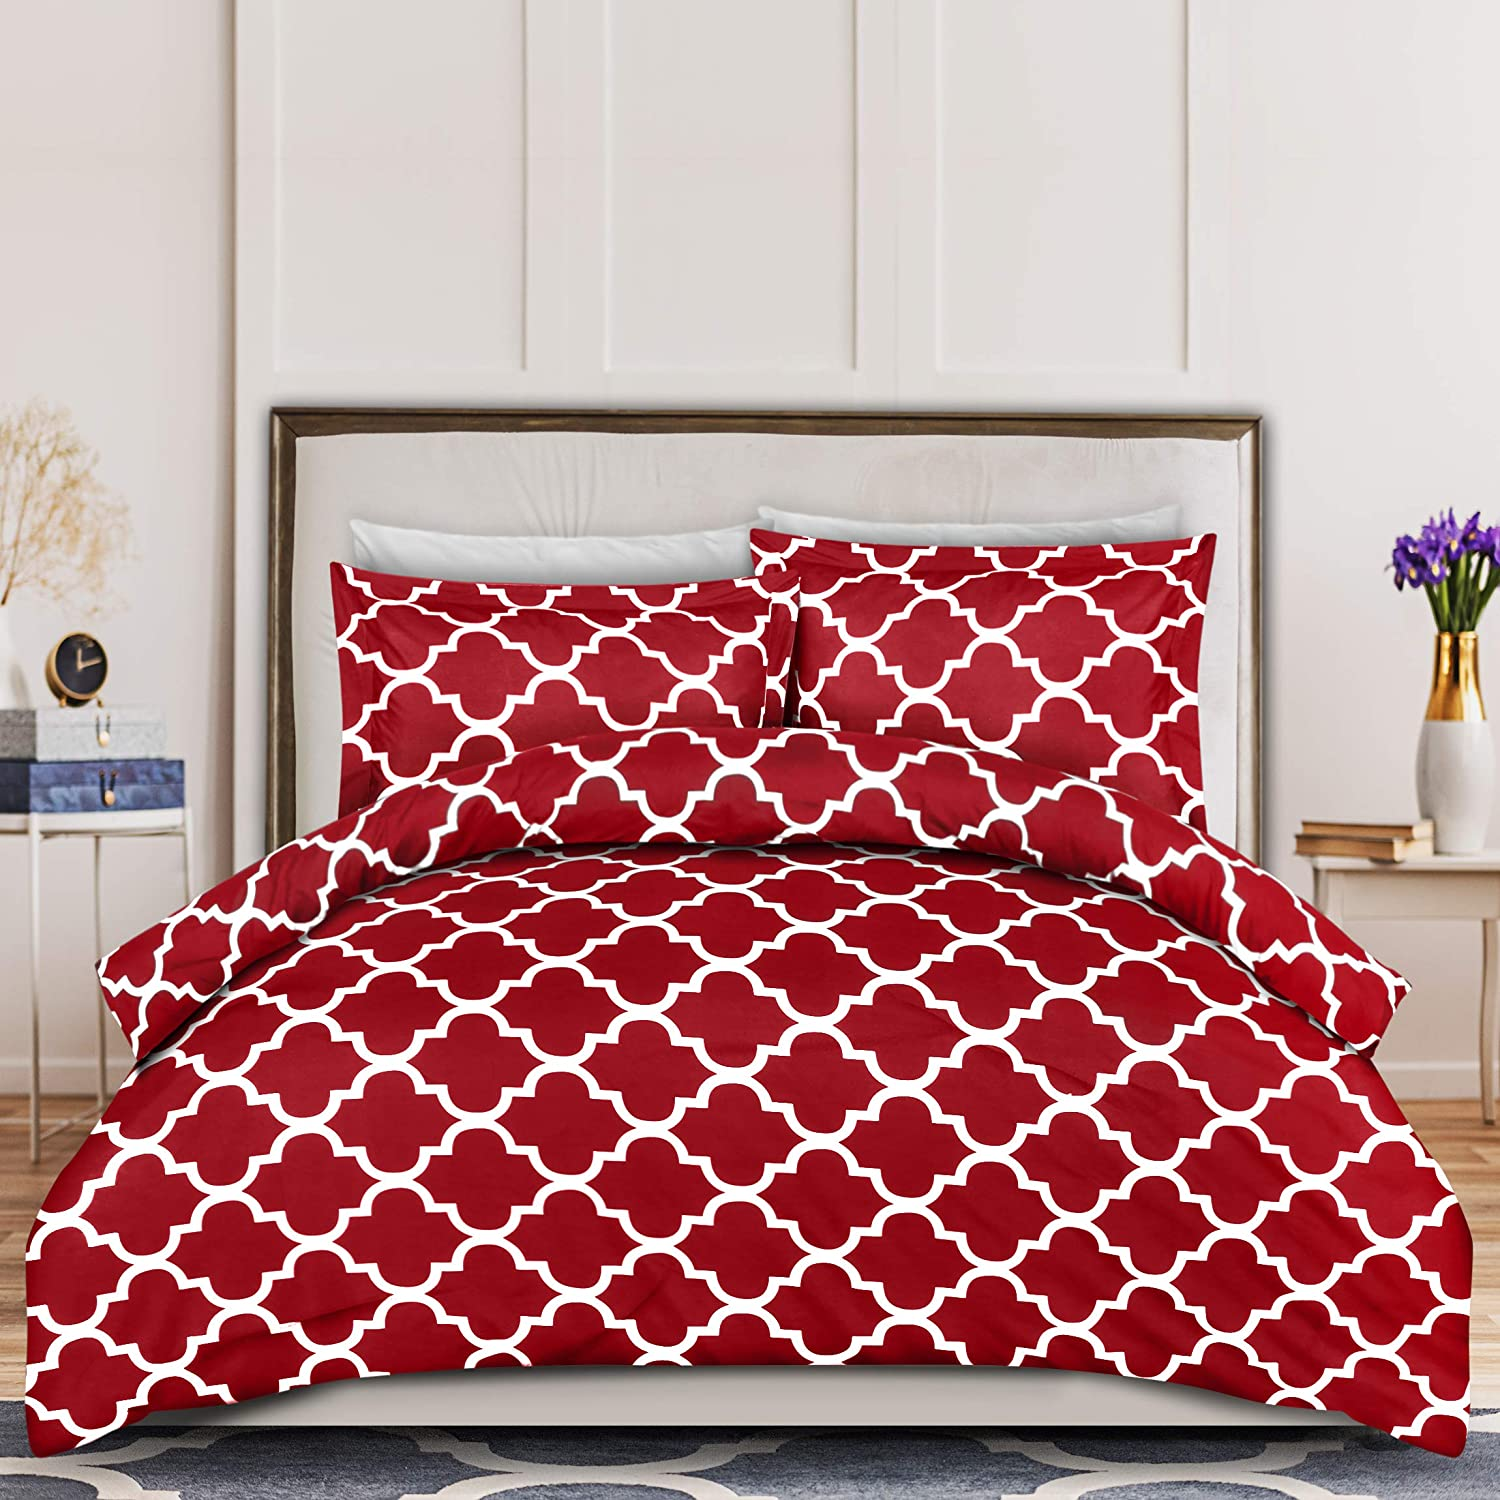 Utopia Bedding 3PC Duvet Cover Set 1 Duvet Cover with 2 Pillow Shams - Comforter Cover with Zipper Closure - Soft Brushed Microfiber - Shrinkage & Fade Resistant Easy Care (Queen, Quatrefoil Burgundy)